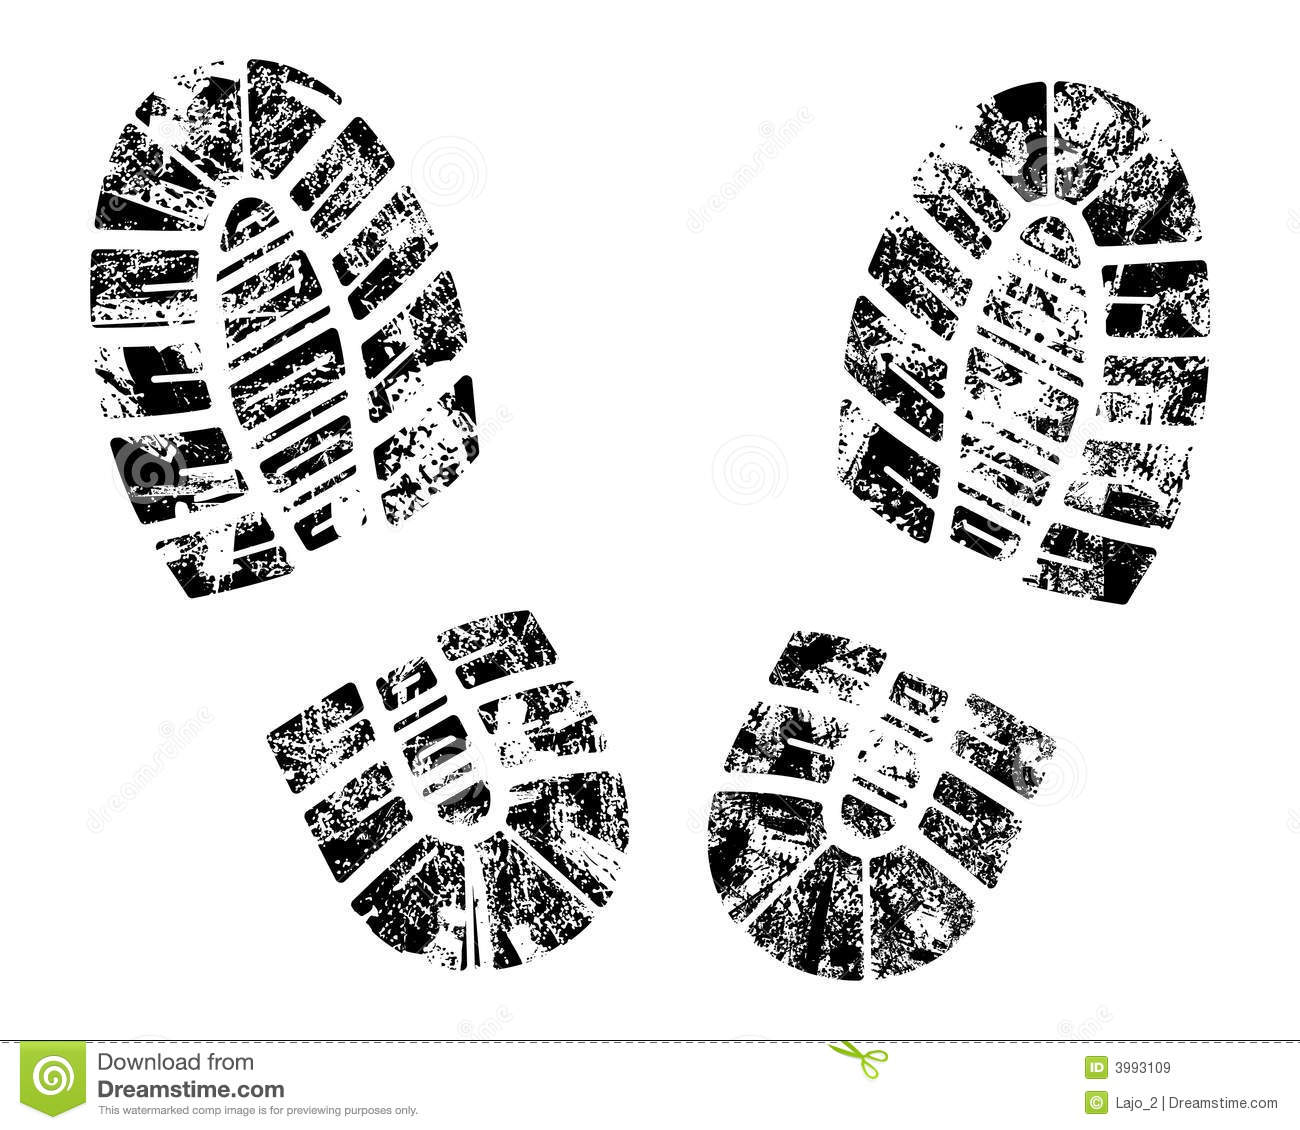 Footprint clipart boot Royalty footprints Bootprint Stock collection